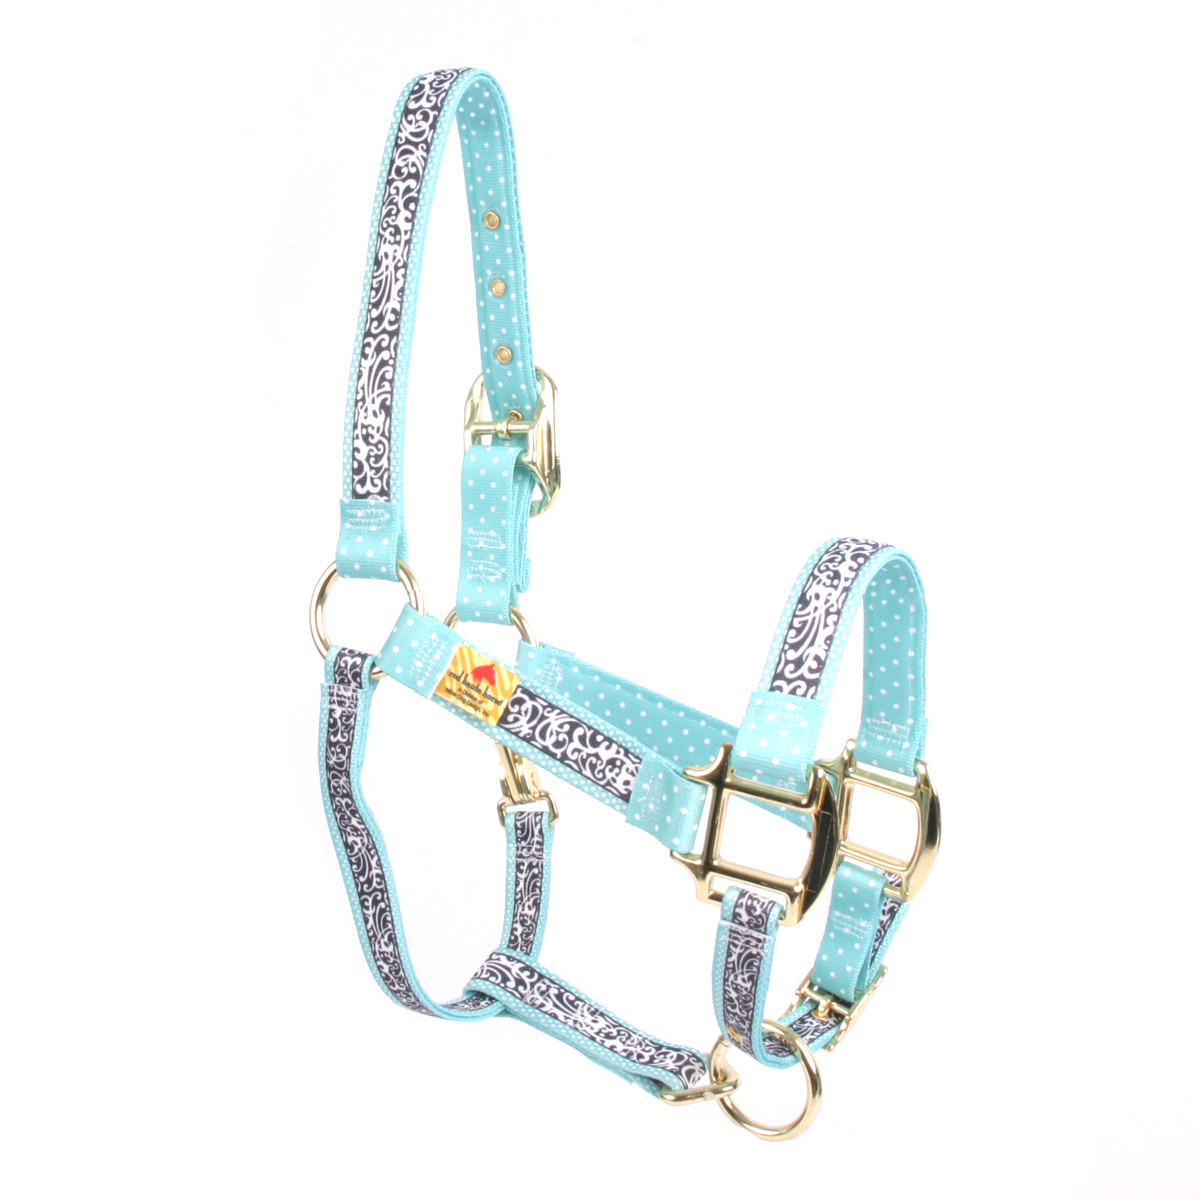 Chantilly Teal High Fashion Horse Halter Made In The Usa At Redhautehorse Com